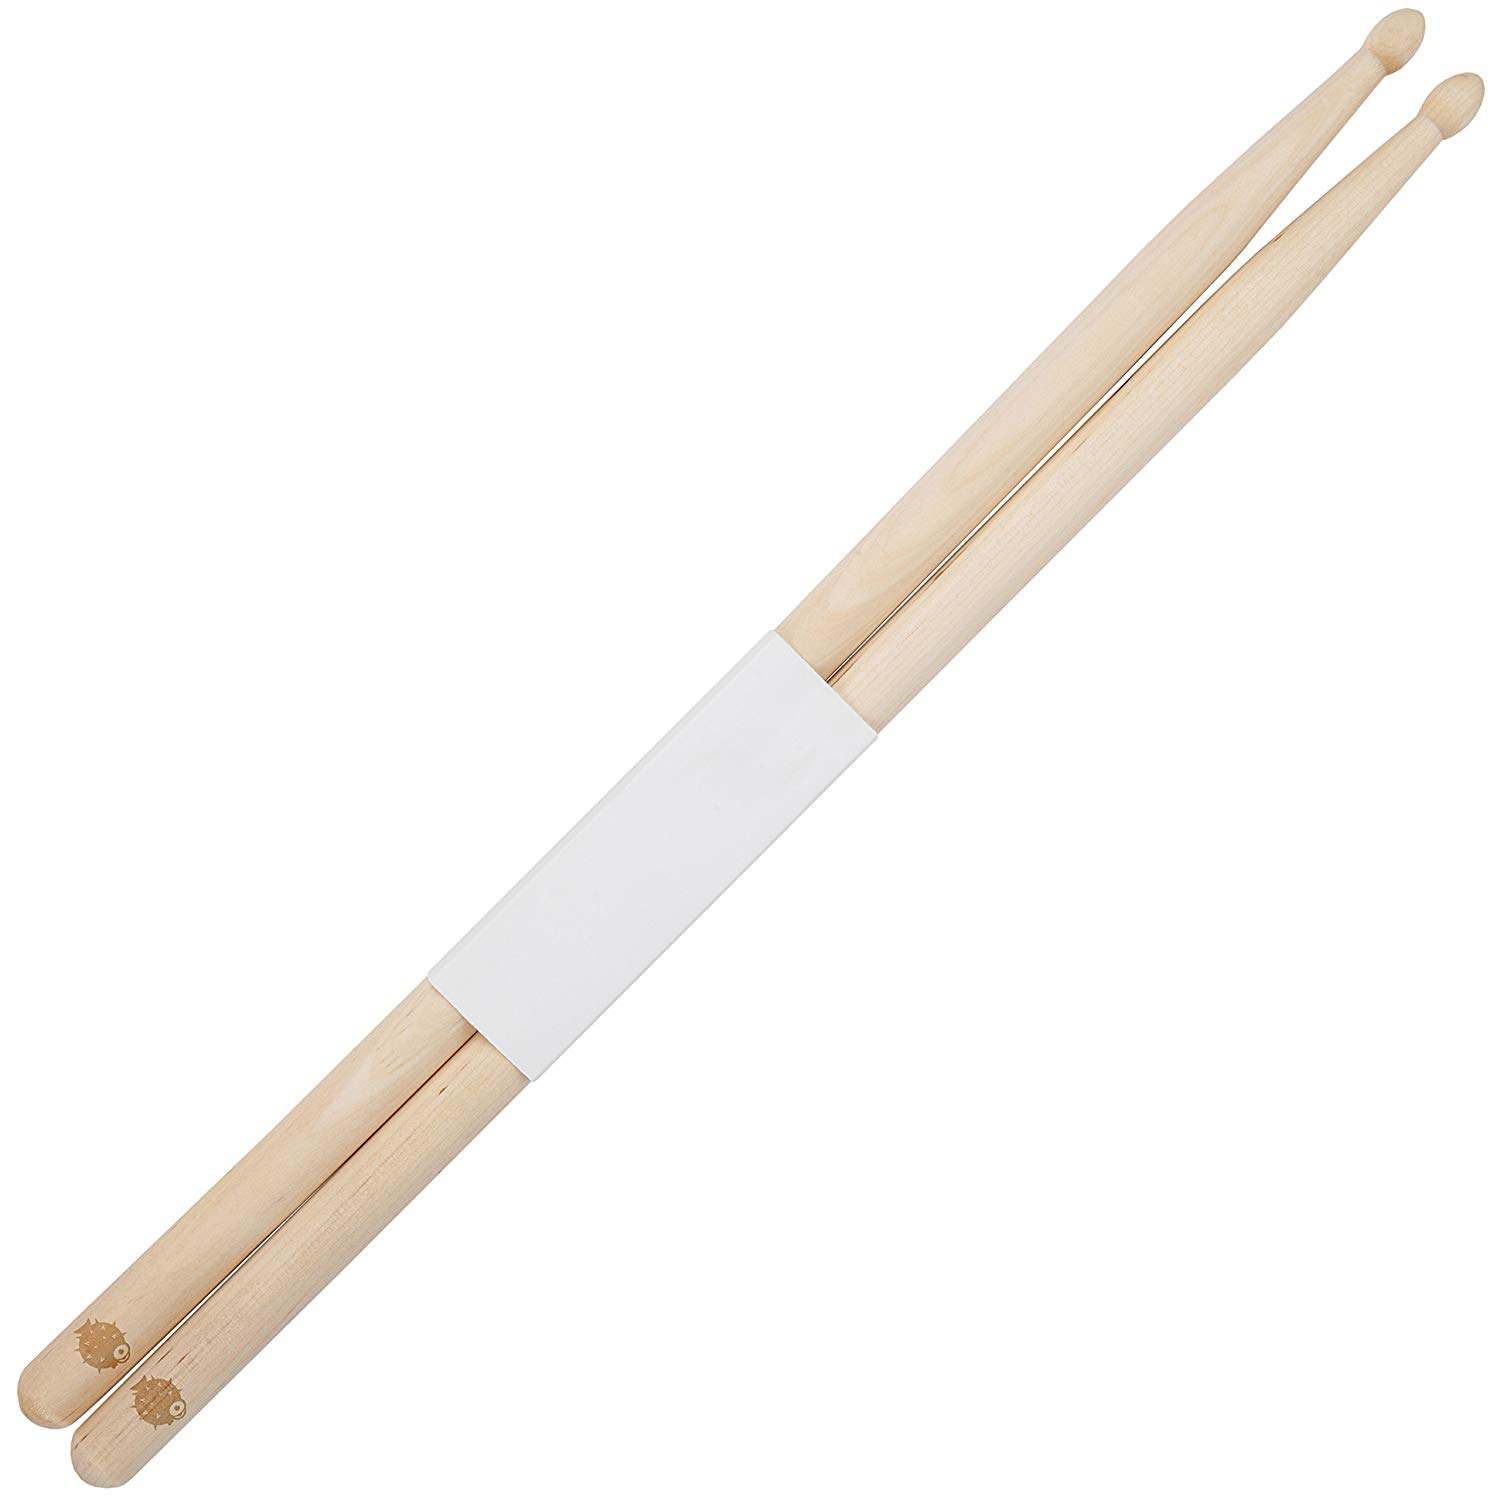 Pufferfish 5B Maple Drumsticks With Laser Engraved Design - Durable Drumstick Set With Wooden Tip - Wood Drumsticks Gift